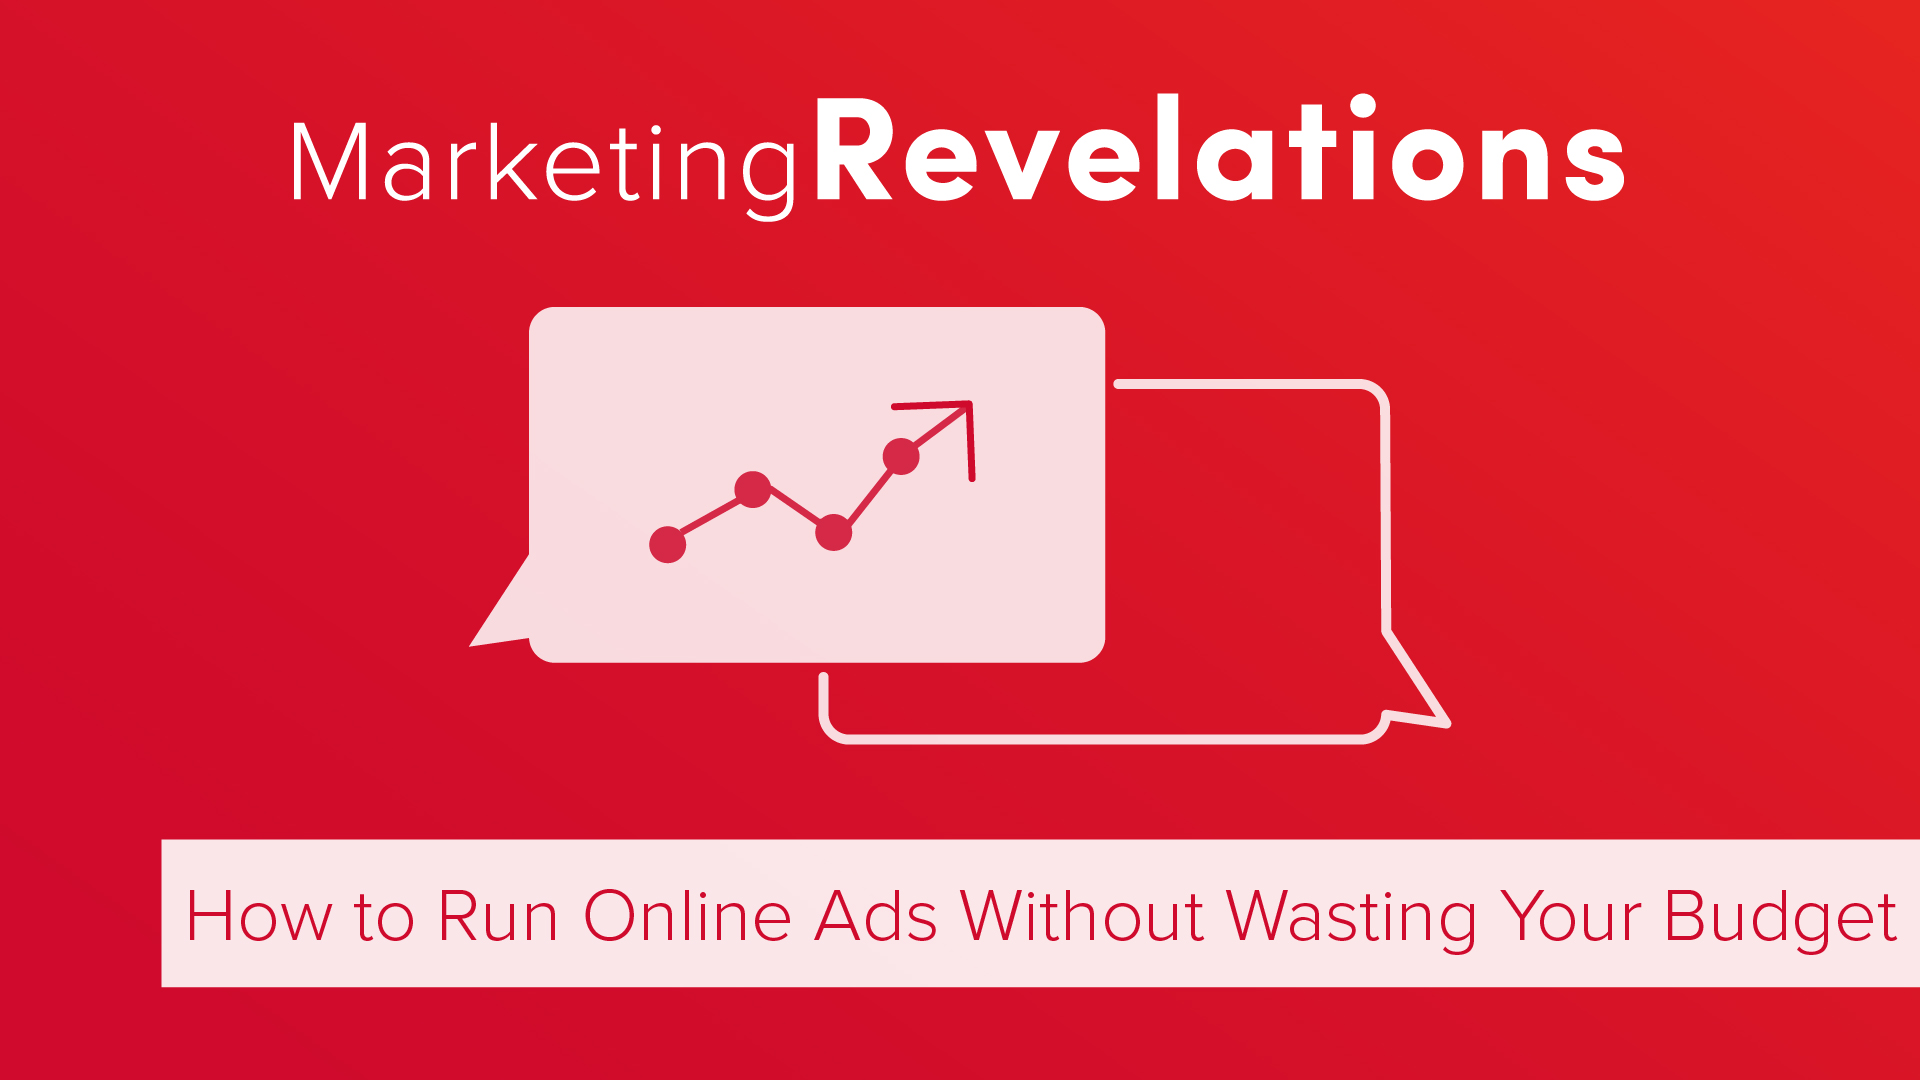 Podcast: How to Run Online Ads Without Wasting Your Budget